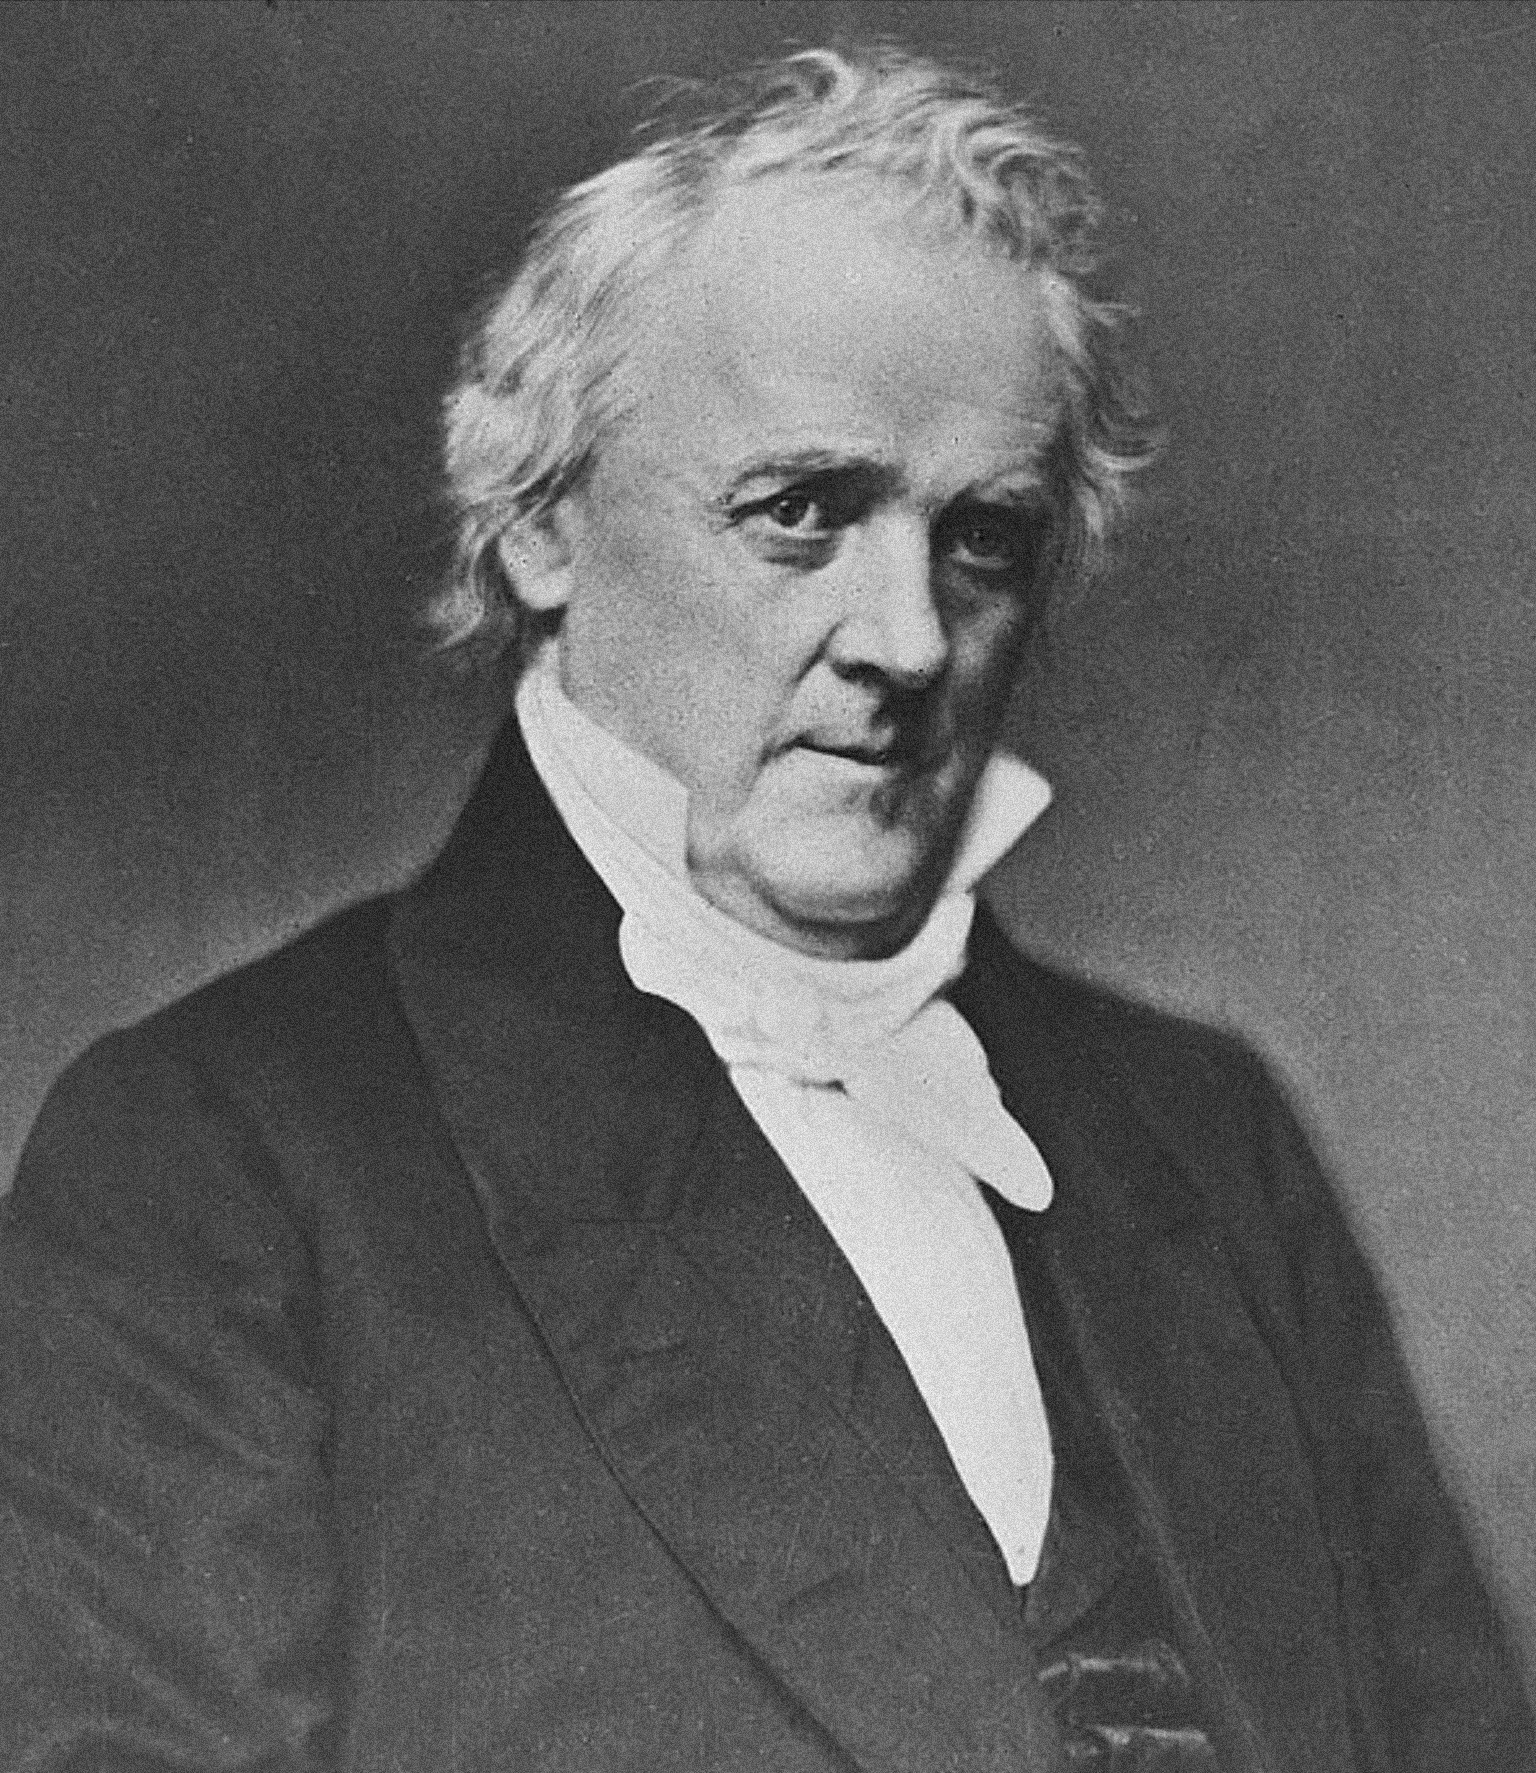 James Buchanan Net Worth